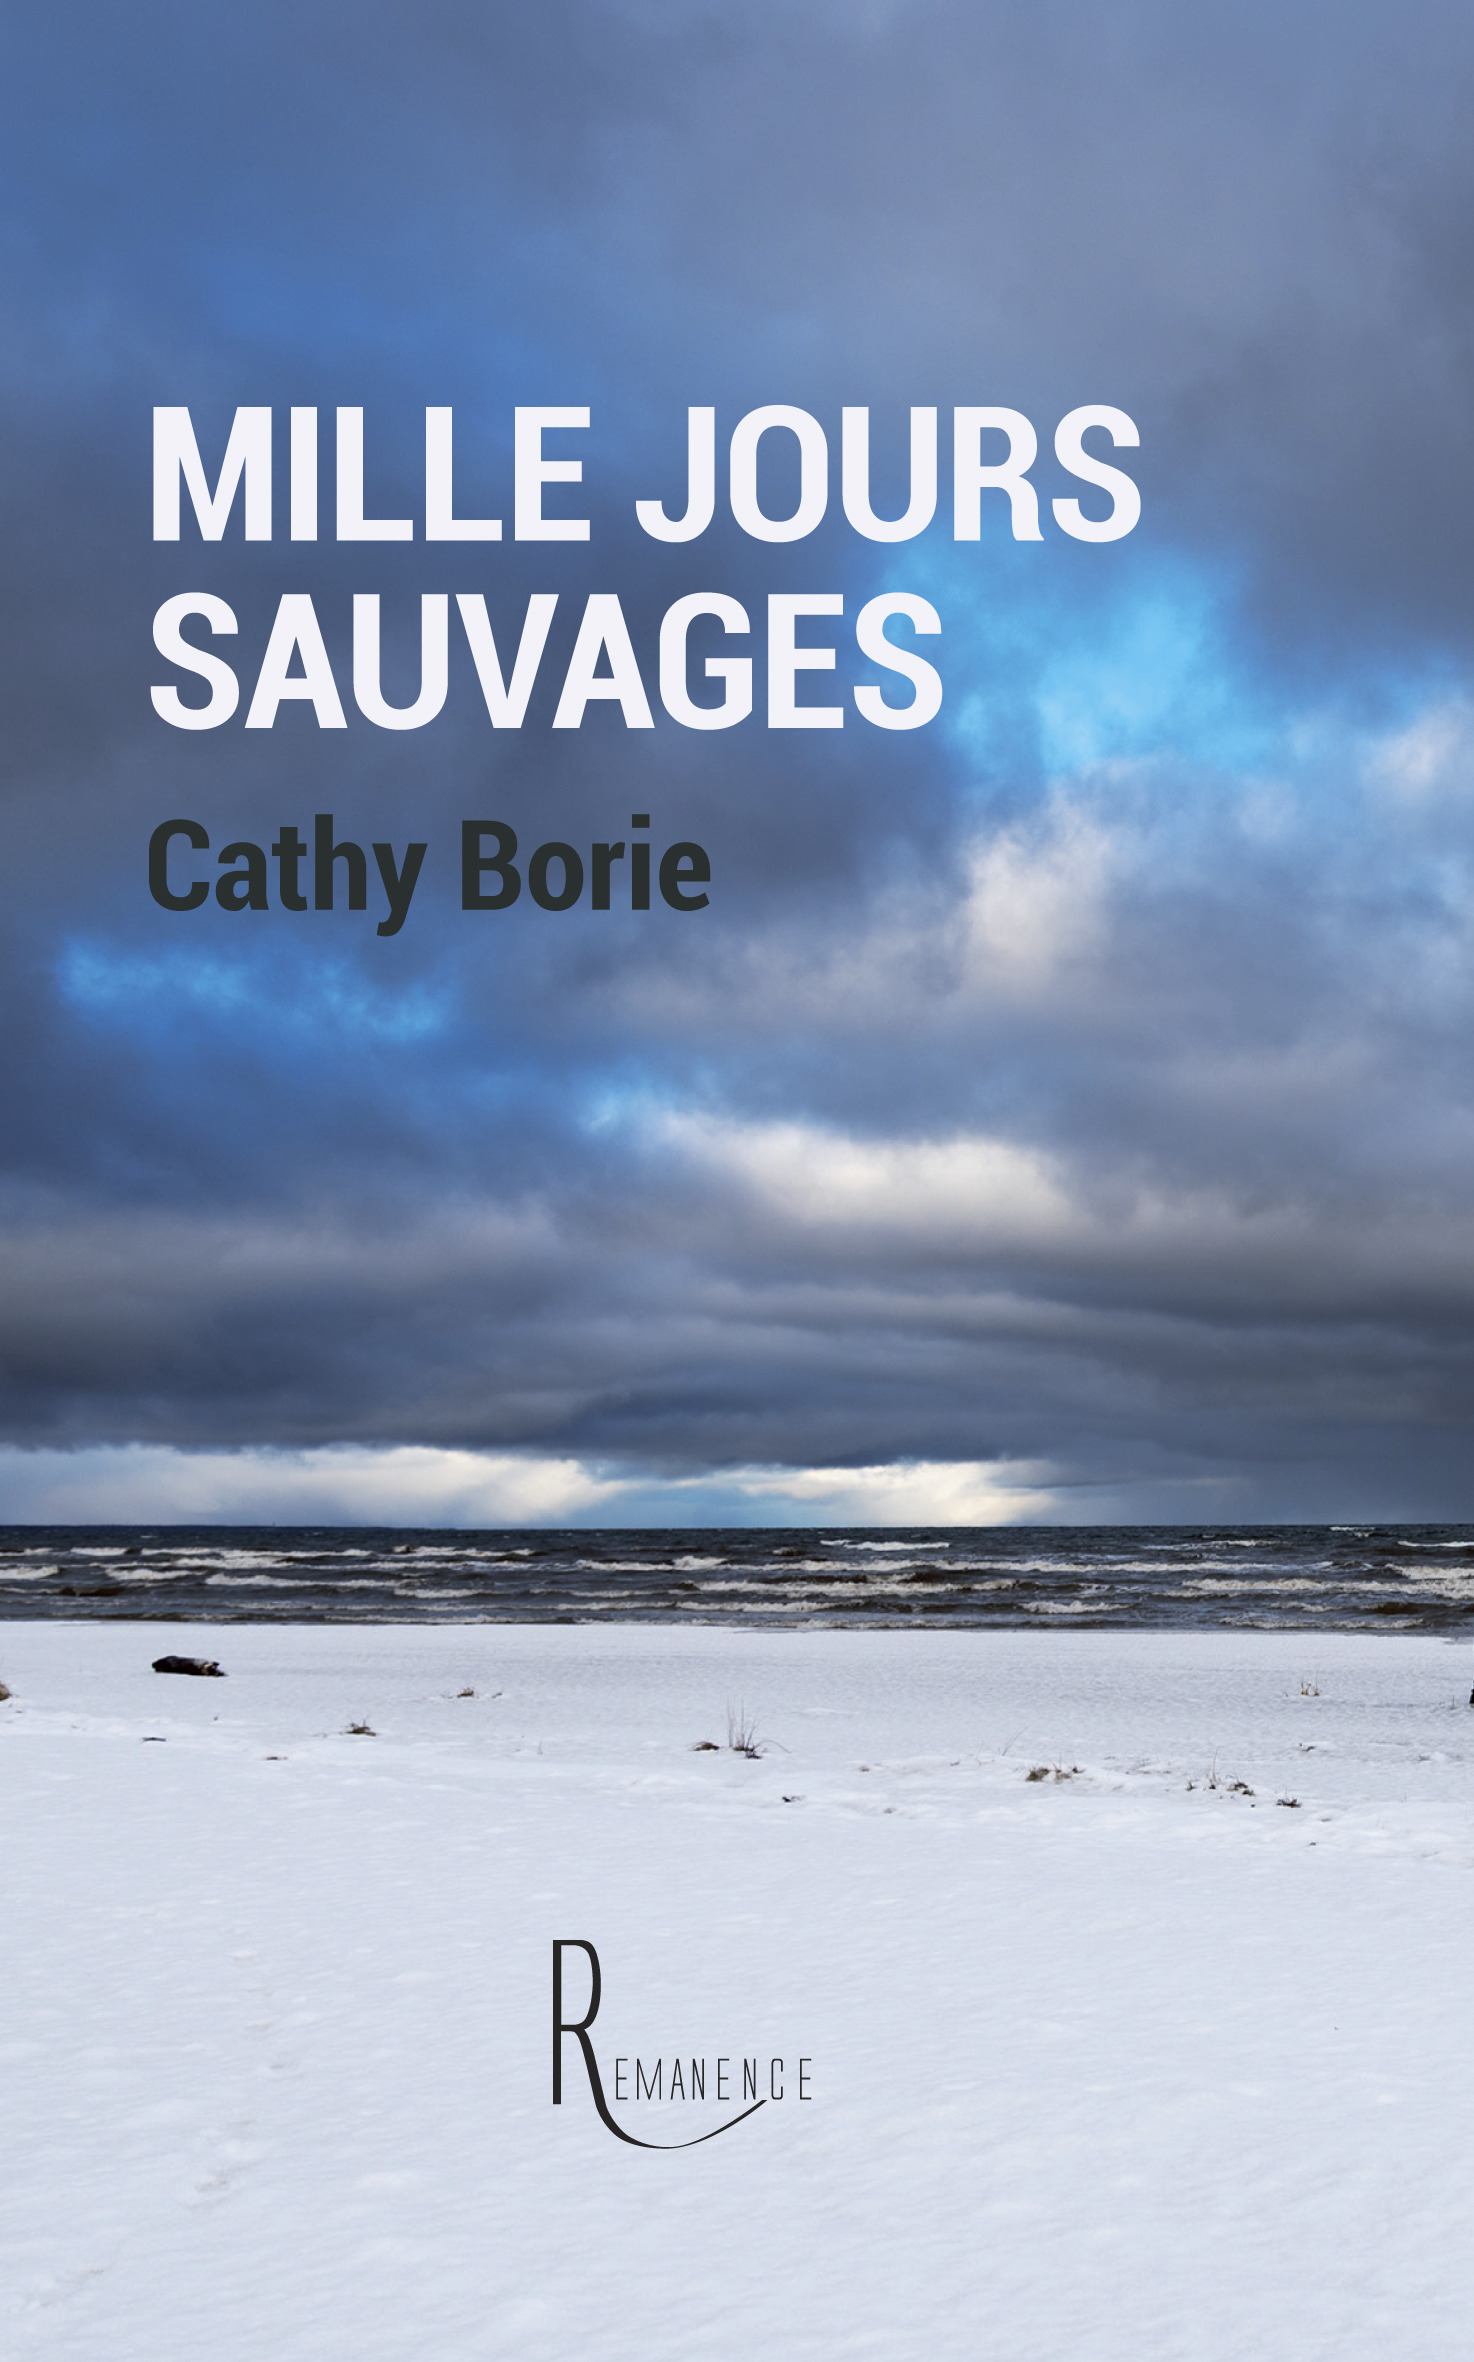 Mille jours sauvages